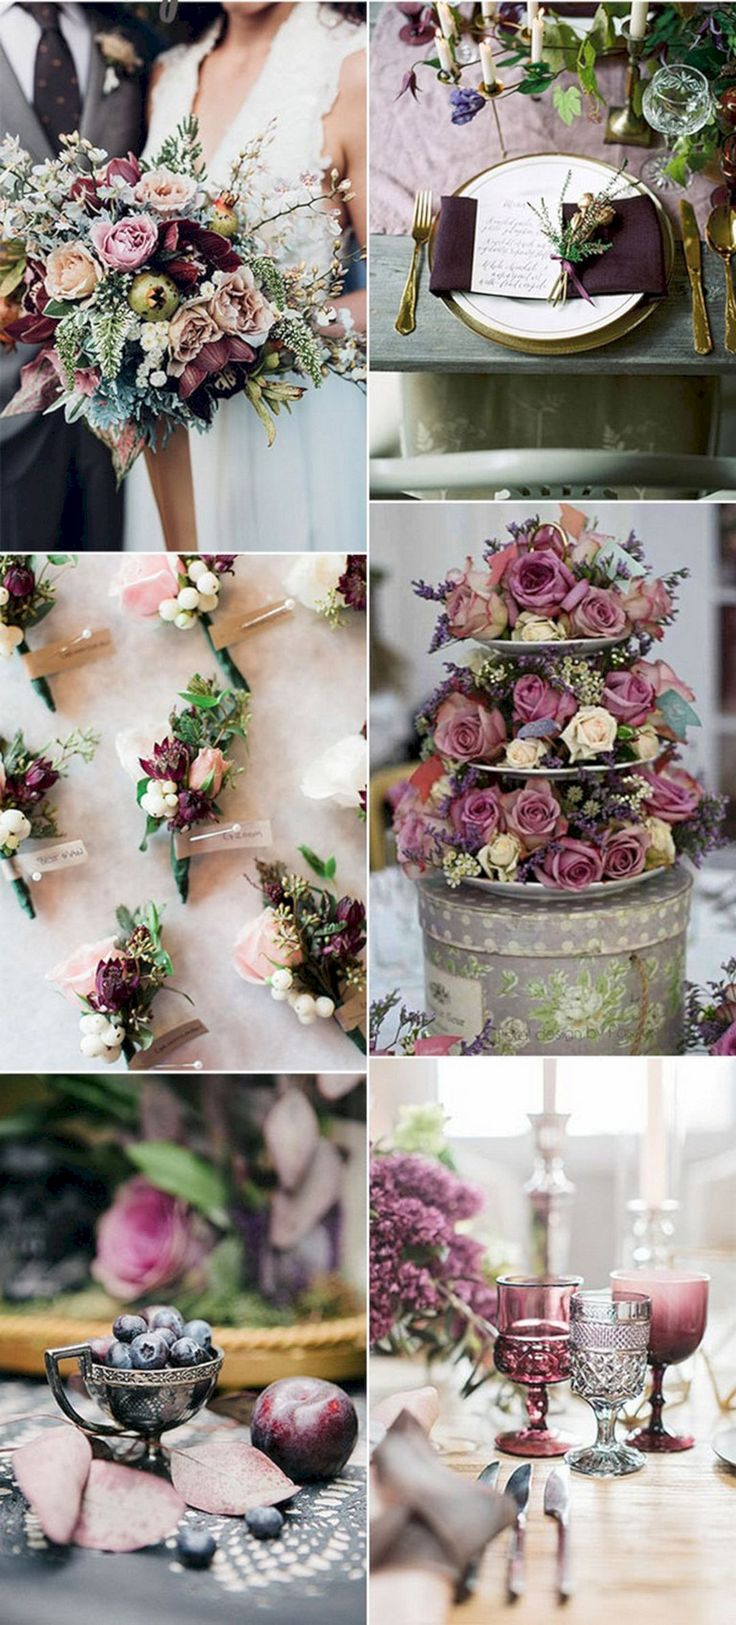 30+ Beautiful Wedding Color Combination Ideas You Need to